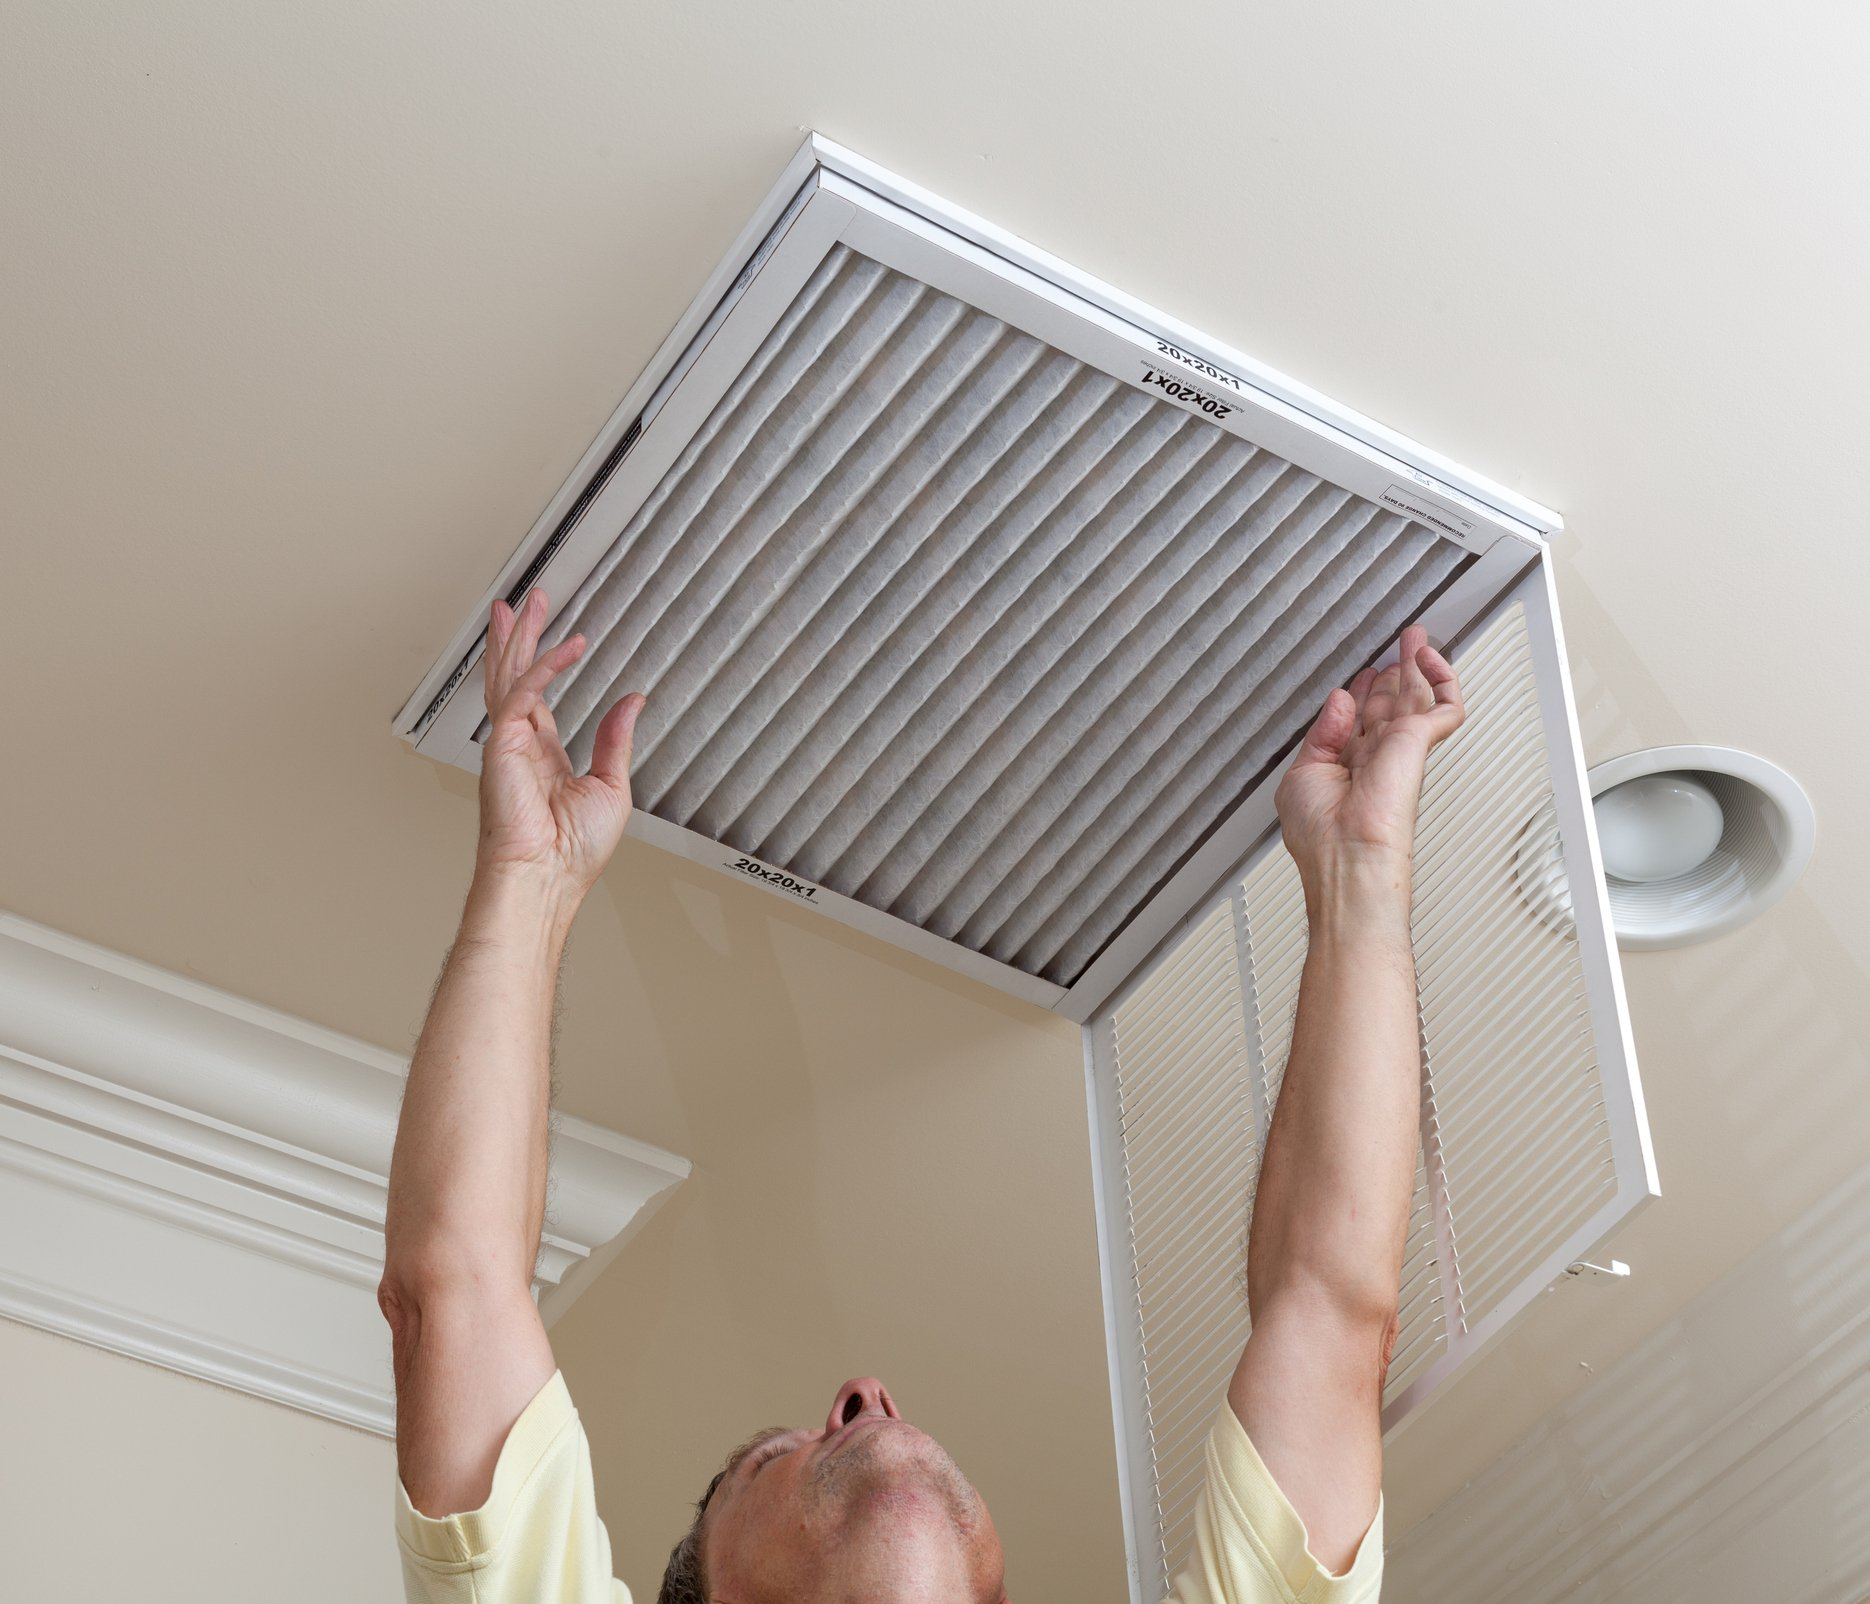 Man Replacing AC Filter in Home | AirCon Service Company